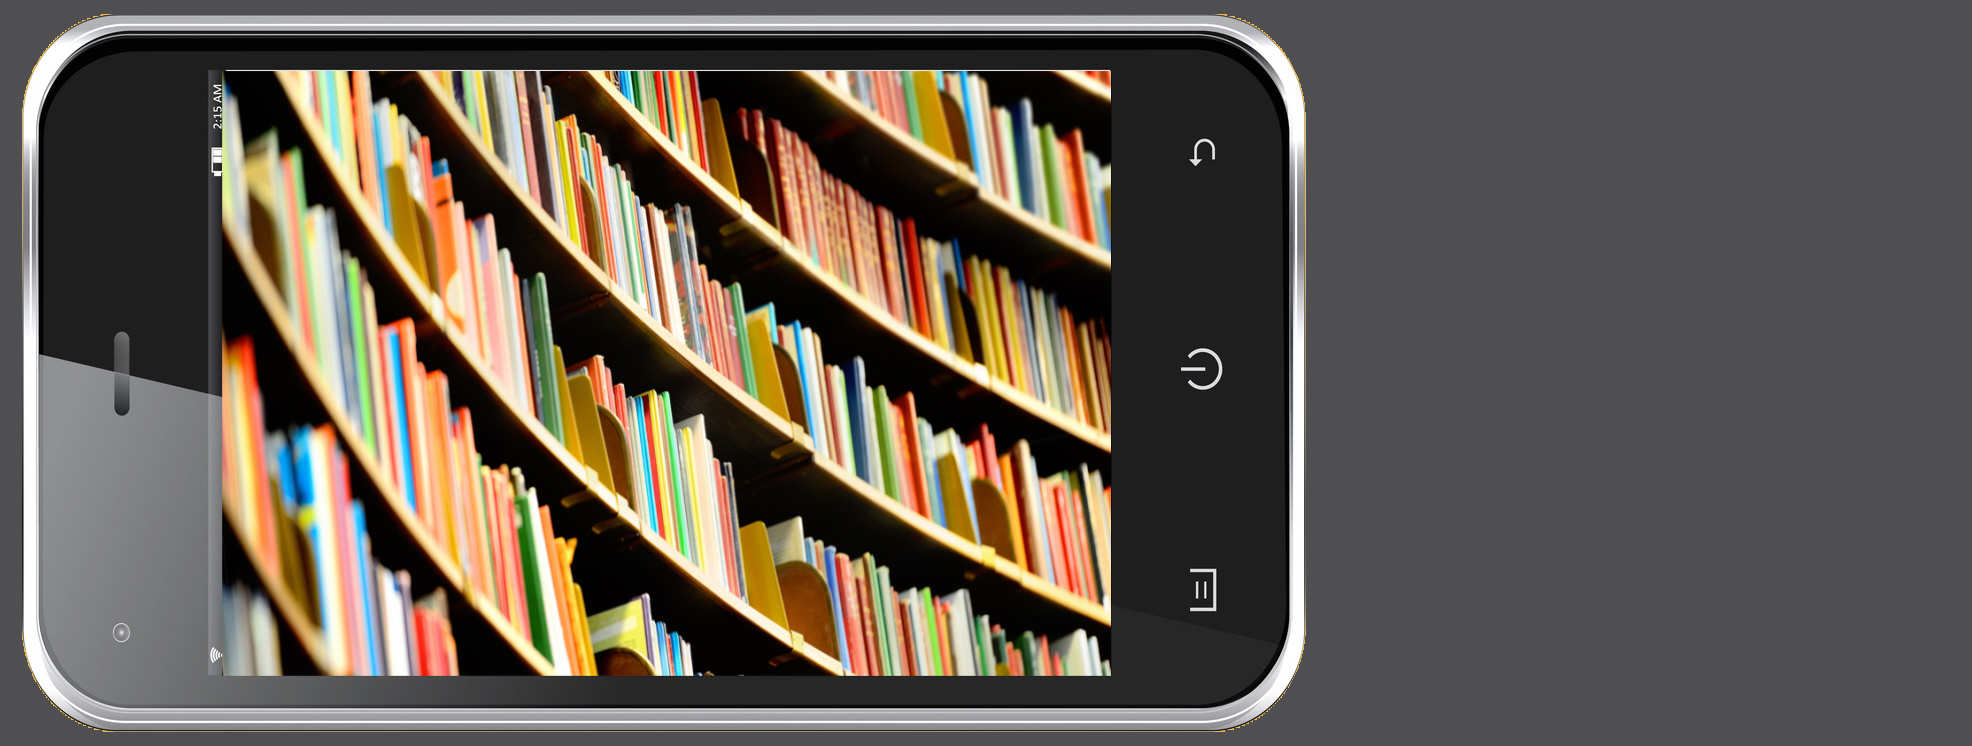 Ipad bookshelves.jpg